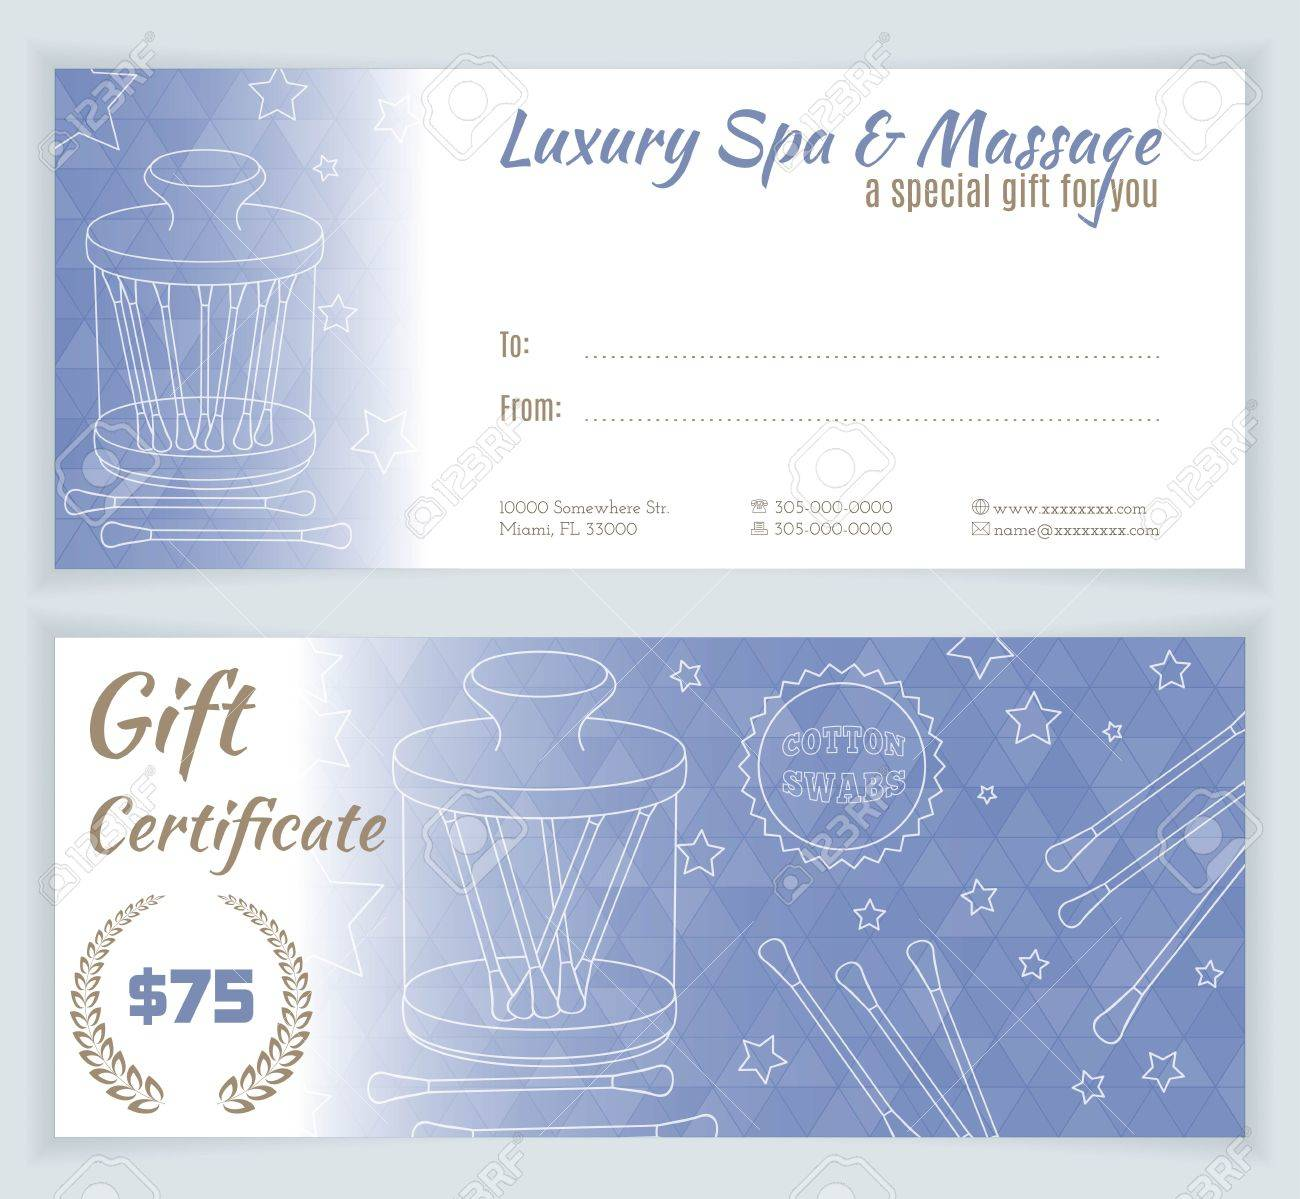 Spa Massage Gift Certificate Template With Hand Drawn Jar With - Free massage gift certificate template